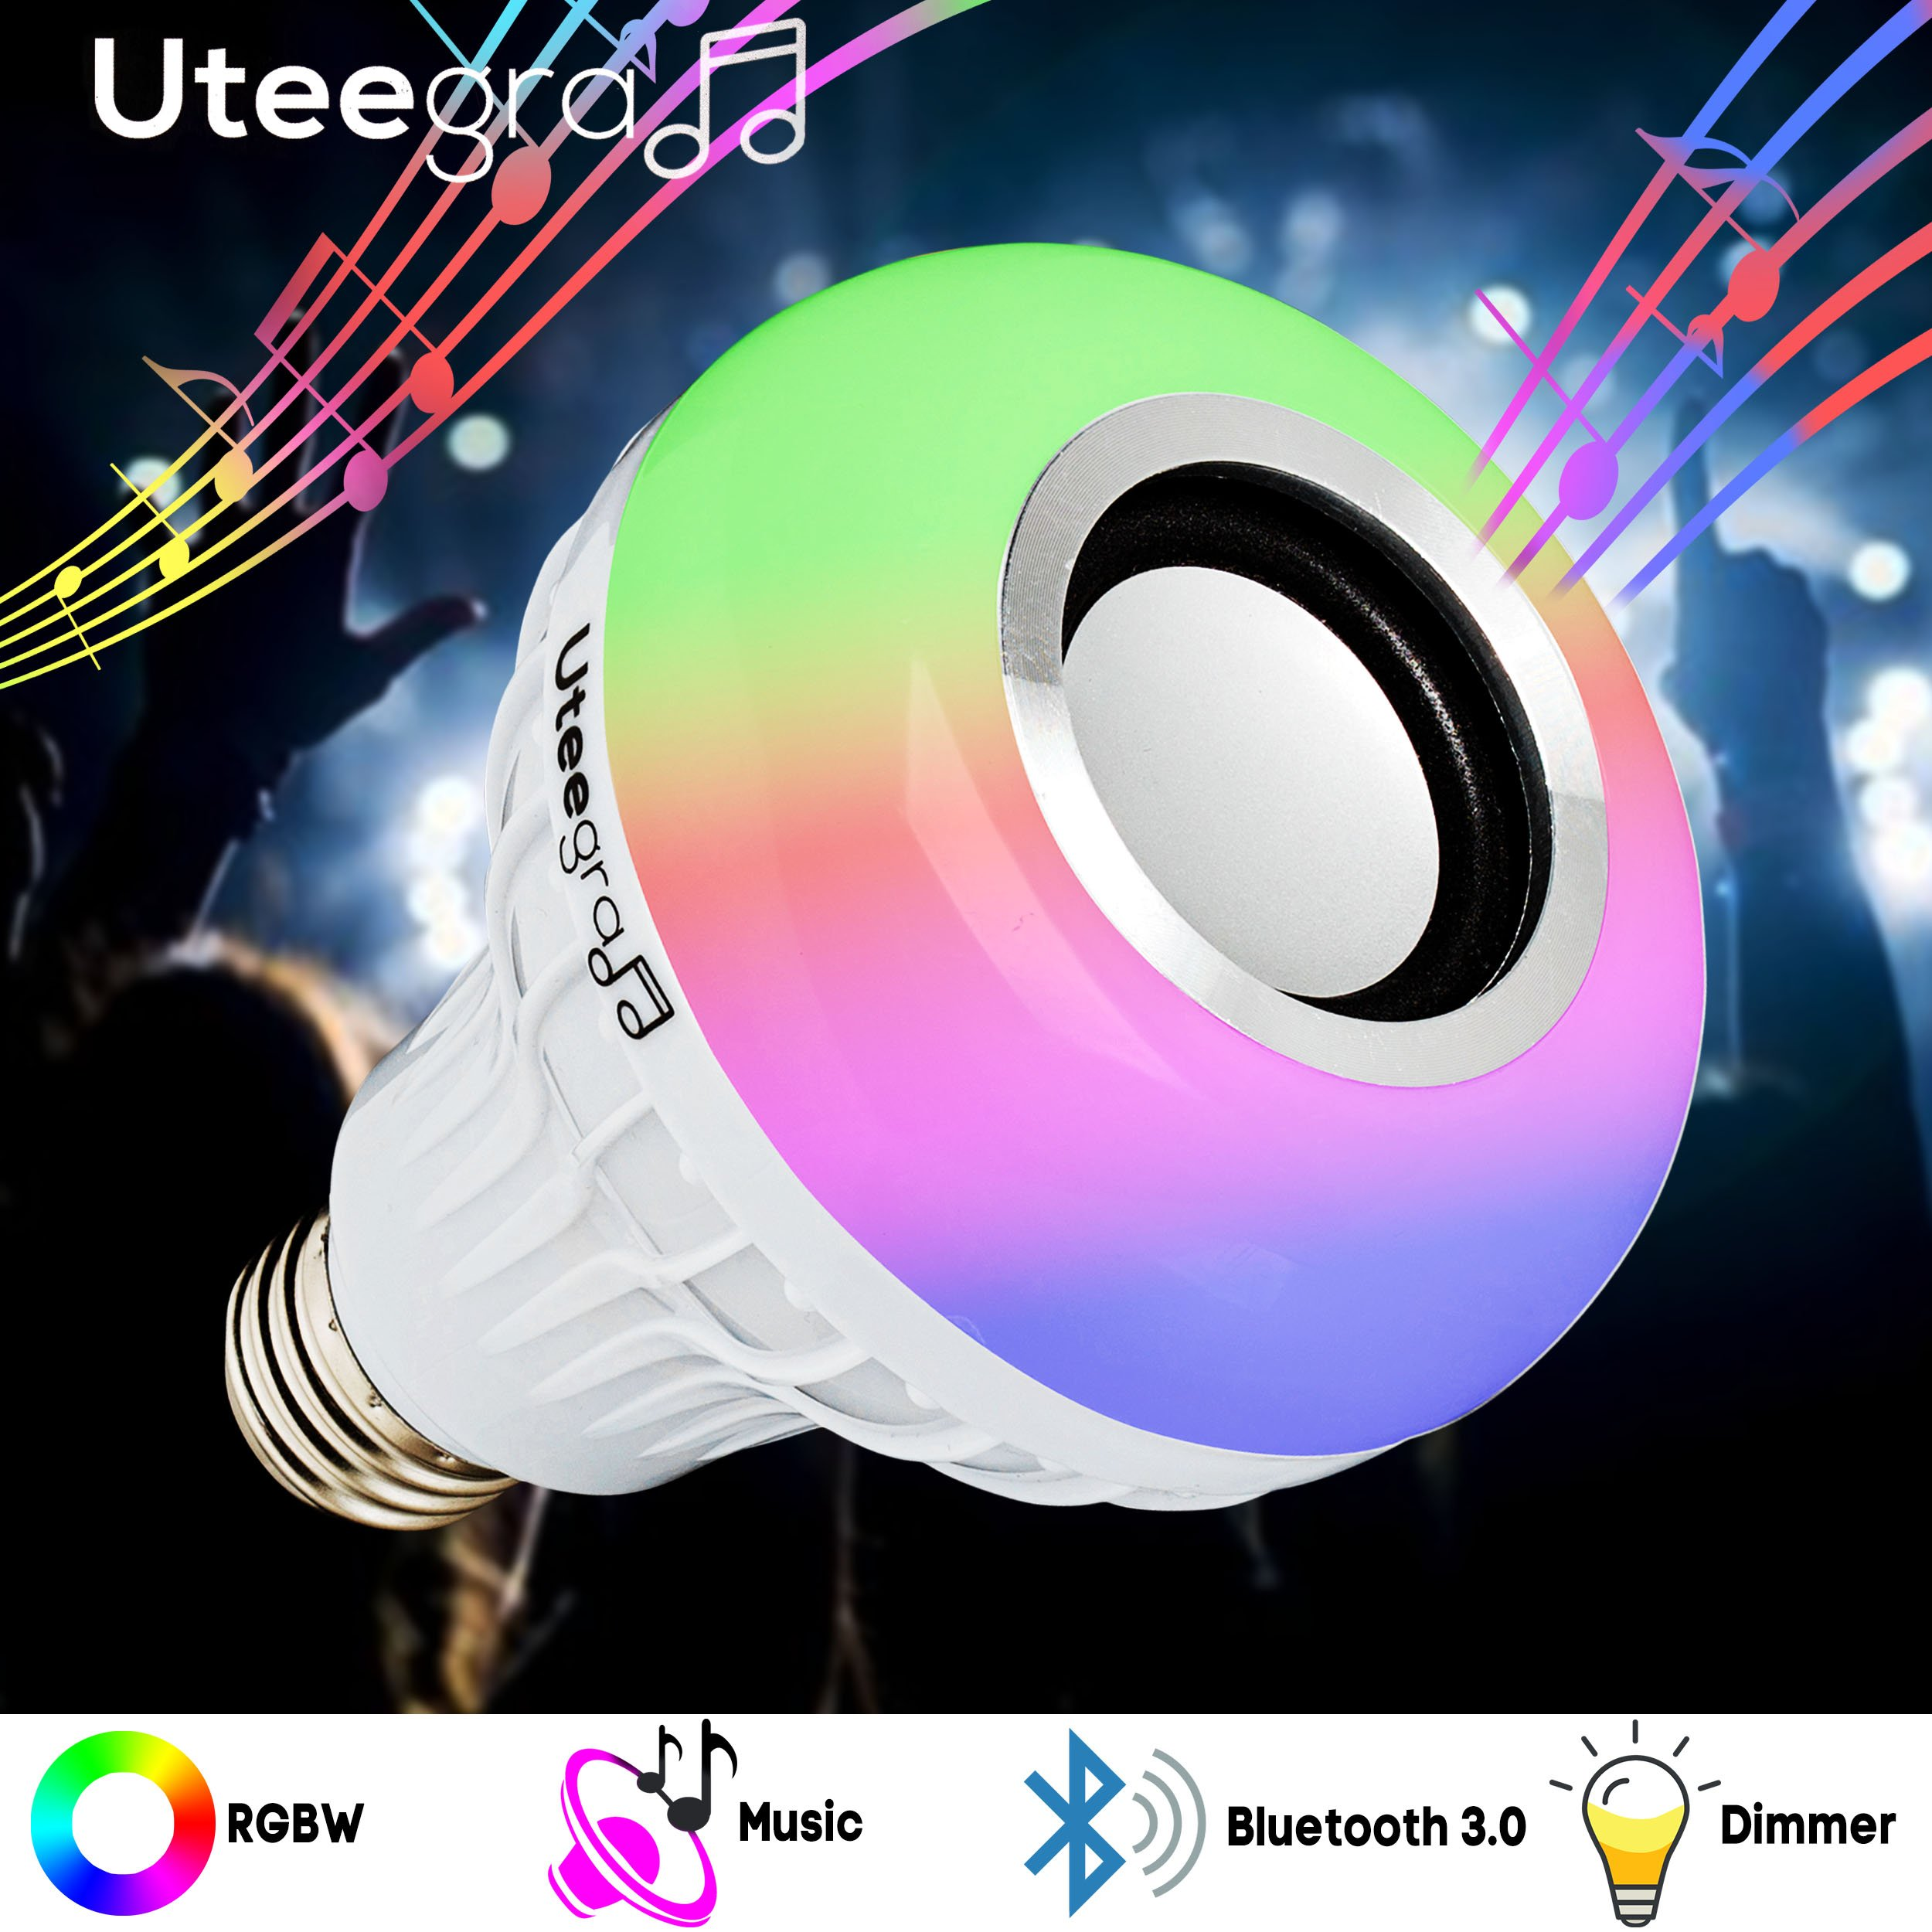 Light E26 LED Music Bulb with Bluetooth Speaker, RGB Changing Color Smart Wireless Lamp for Home, Bedroom, Living Room, Party Decoratio